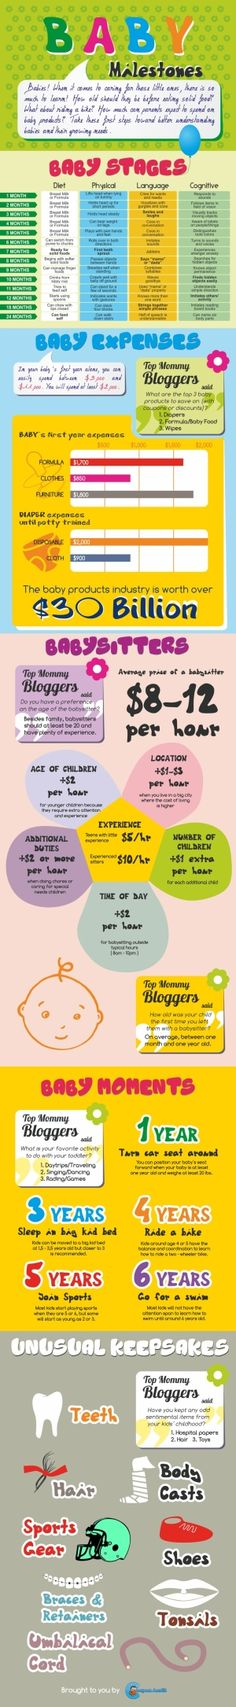 Baby milestones When should baby sit up? Crawl? Walk? Talk? baby - Baby Development Chart